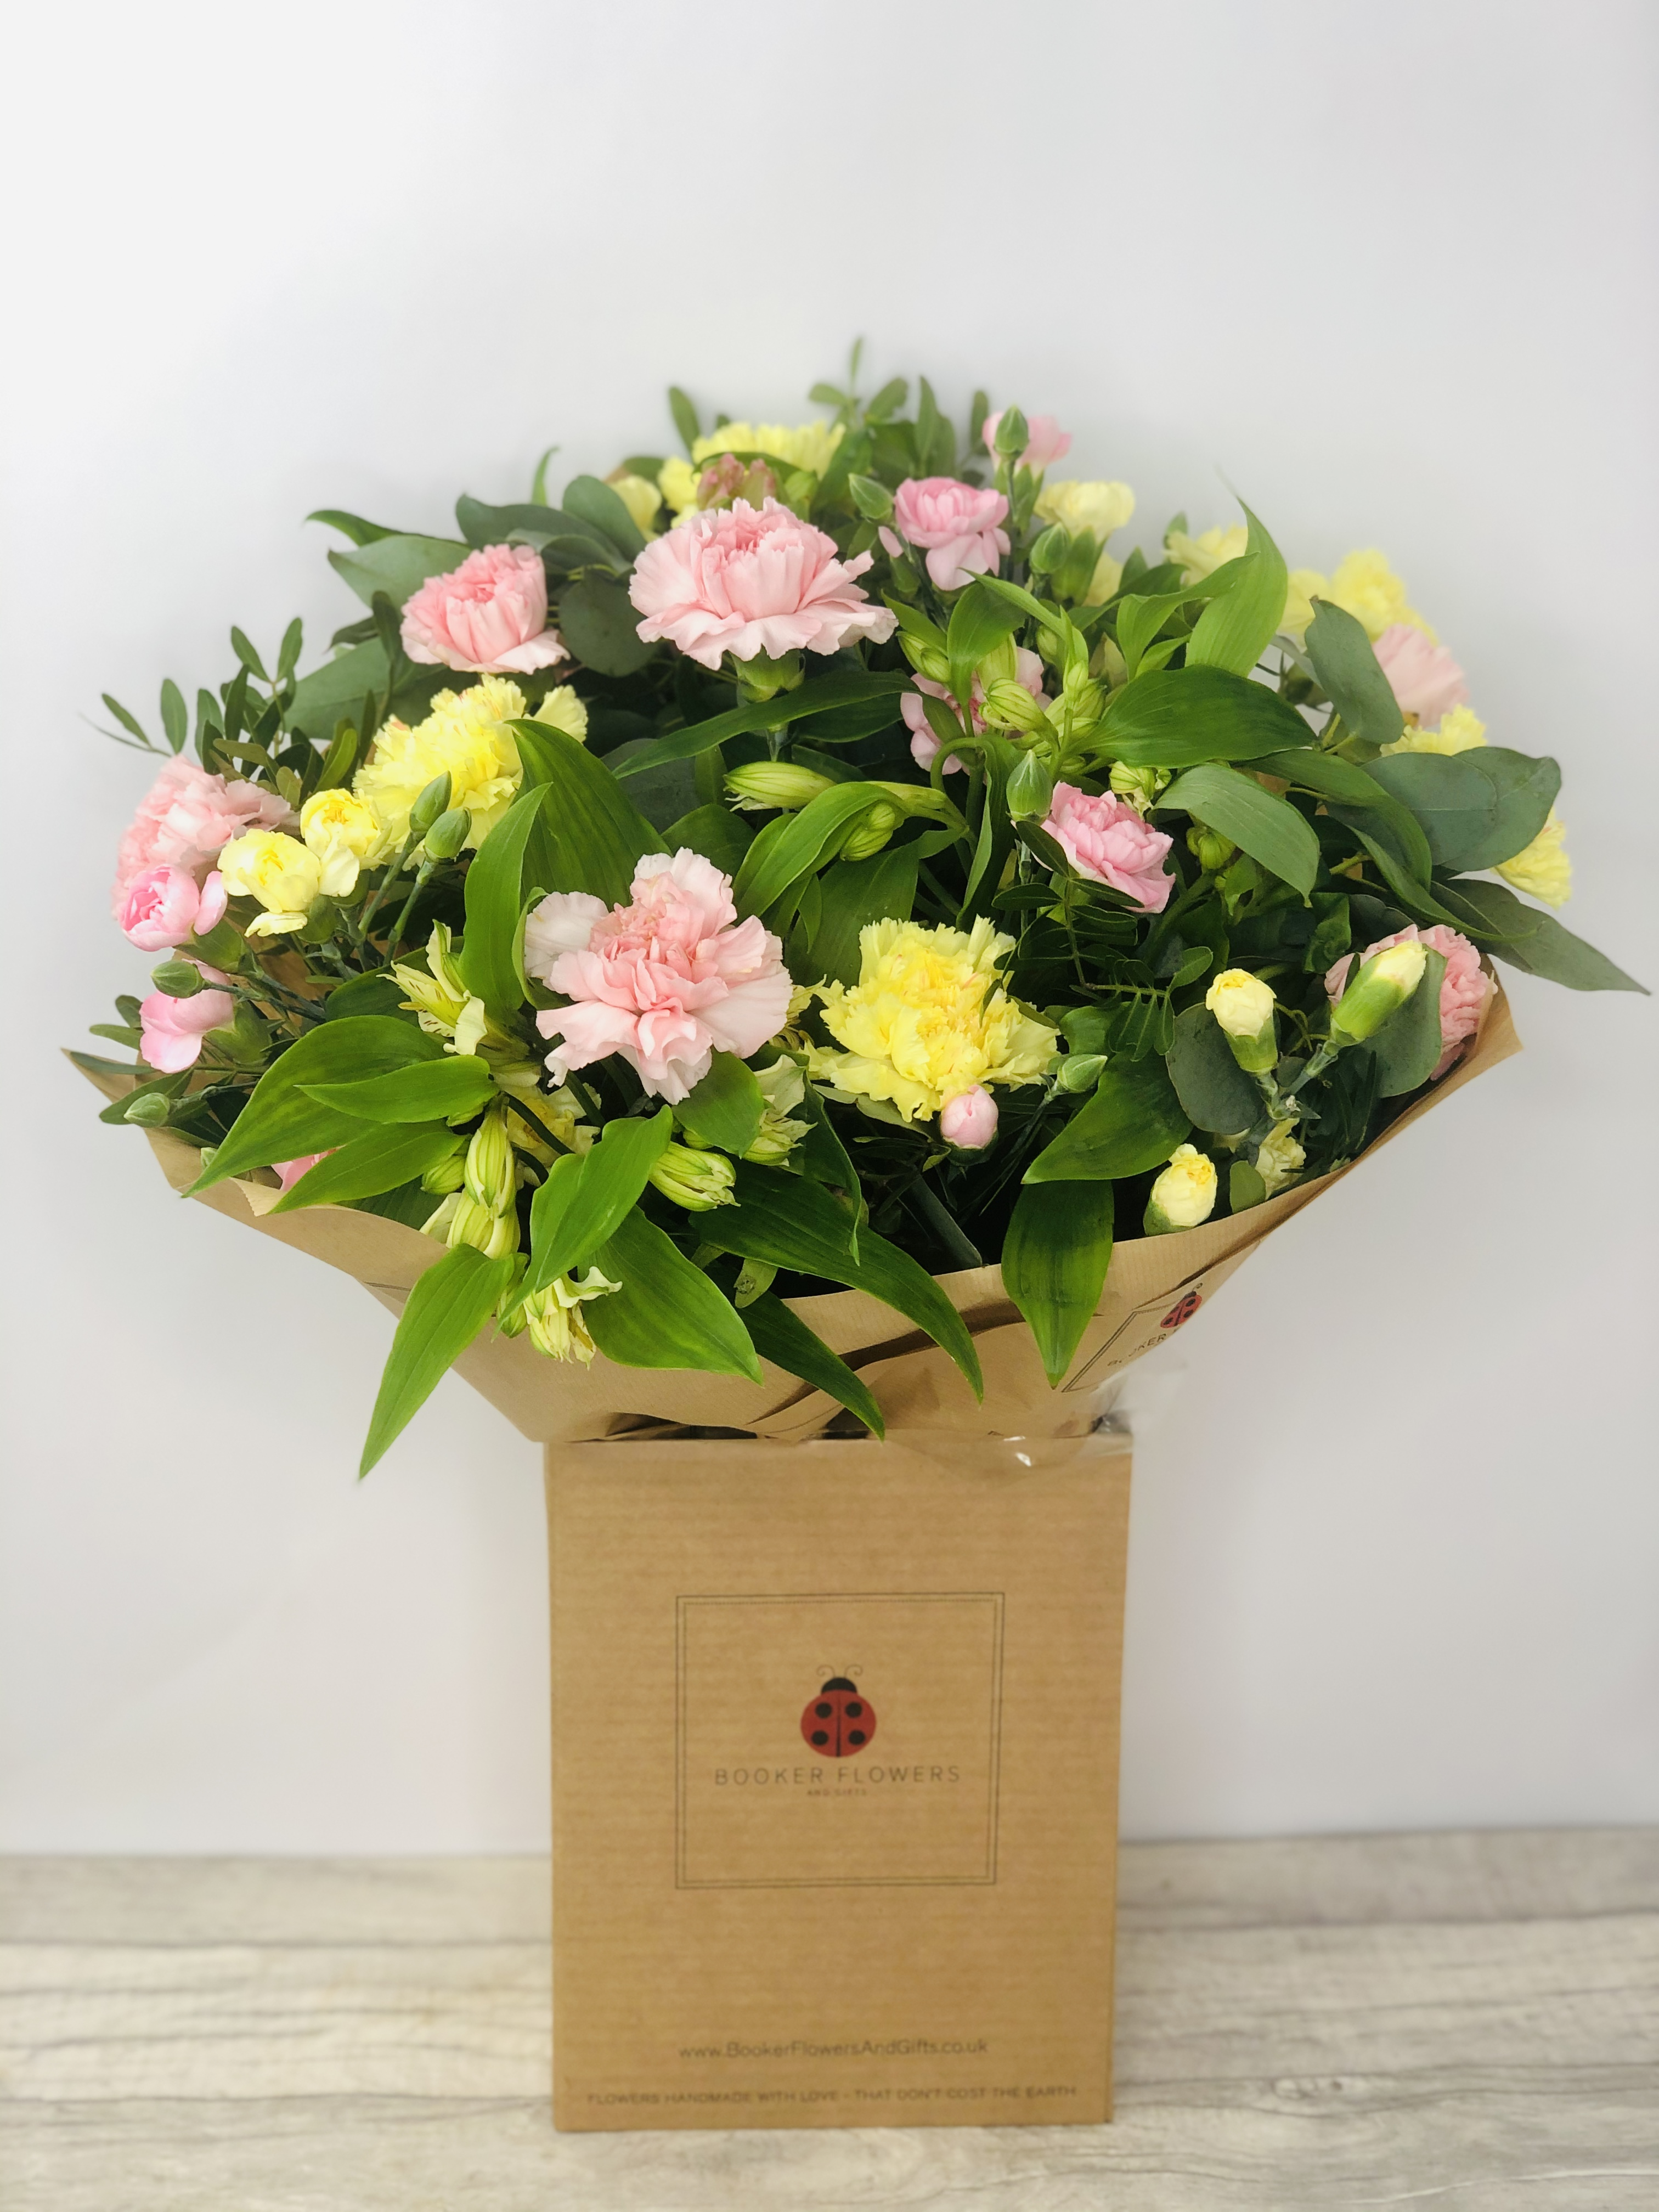 We have a wide selection of Hand Tied Bouquets - we offer Flower Delivery Liverpool. We can provide Handtied bouquets for you in Liverpool - Merseyside and can organize Handtied Bouquet deliveries for you Nationwide.